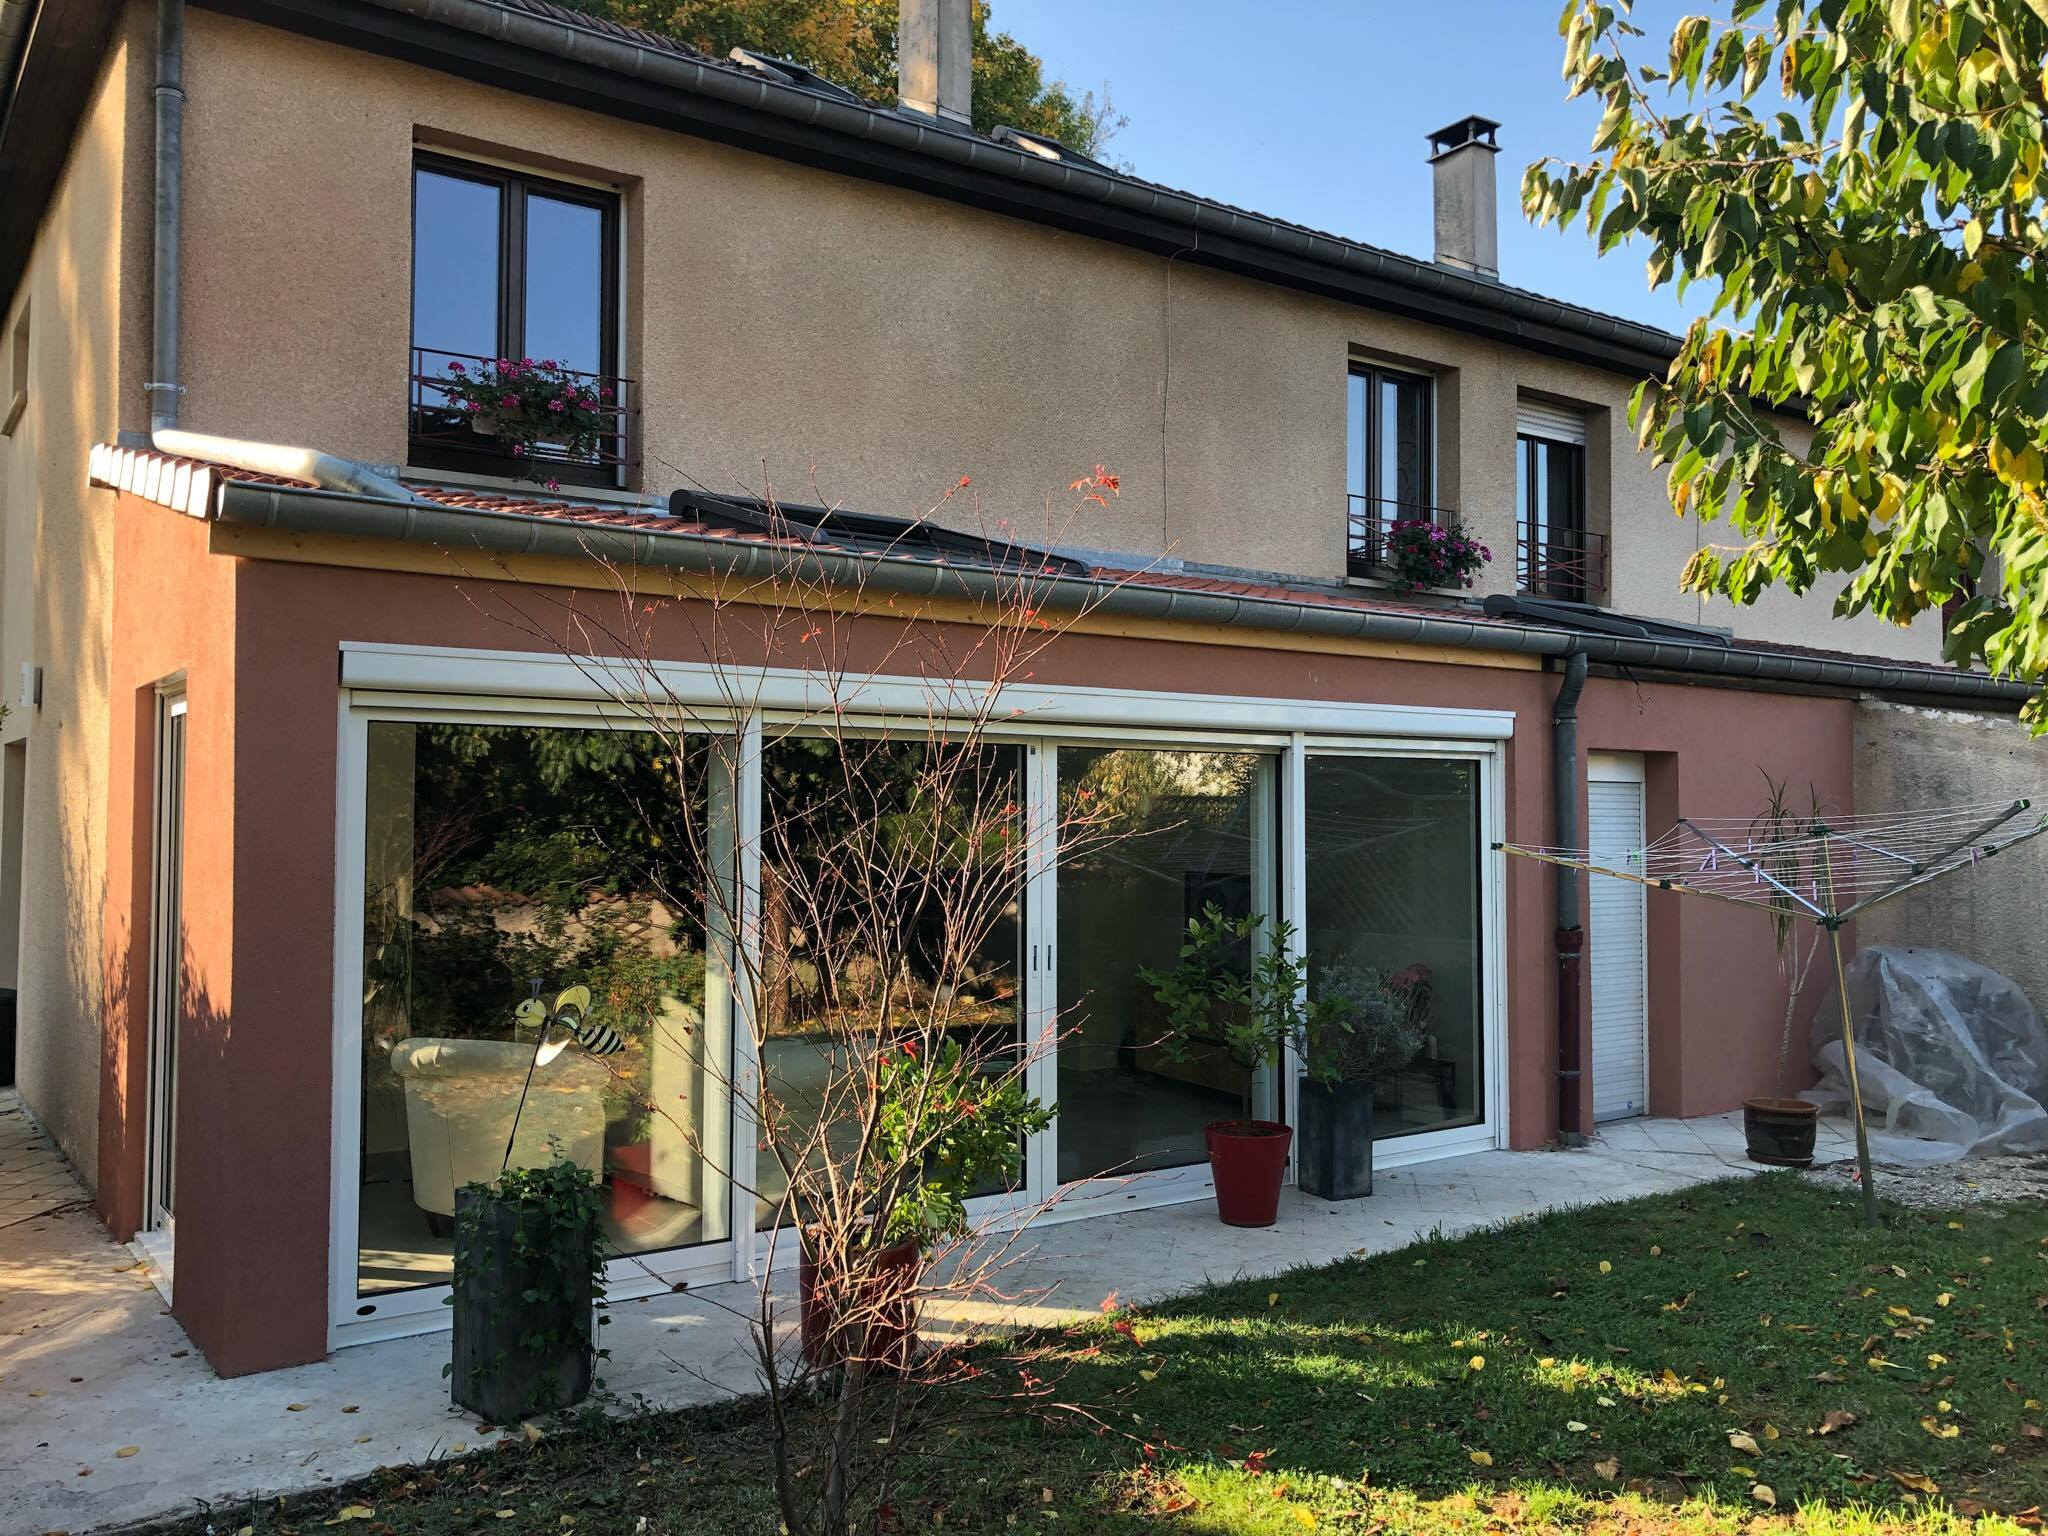 Tecnhome fabricant maisons extensions ossature bois for Extension maison ossature bois sur pilotis